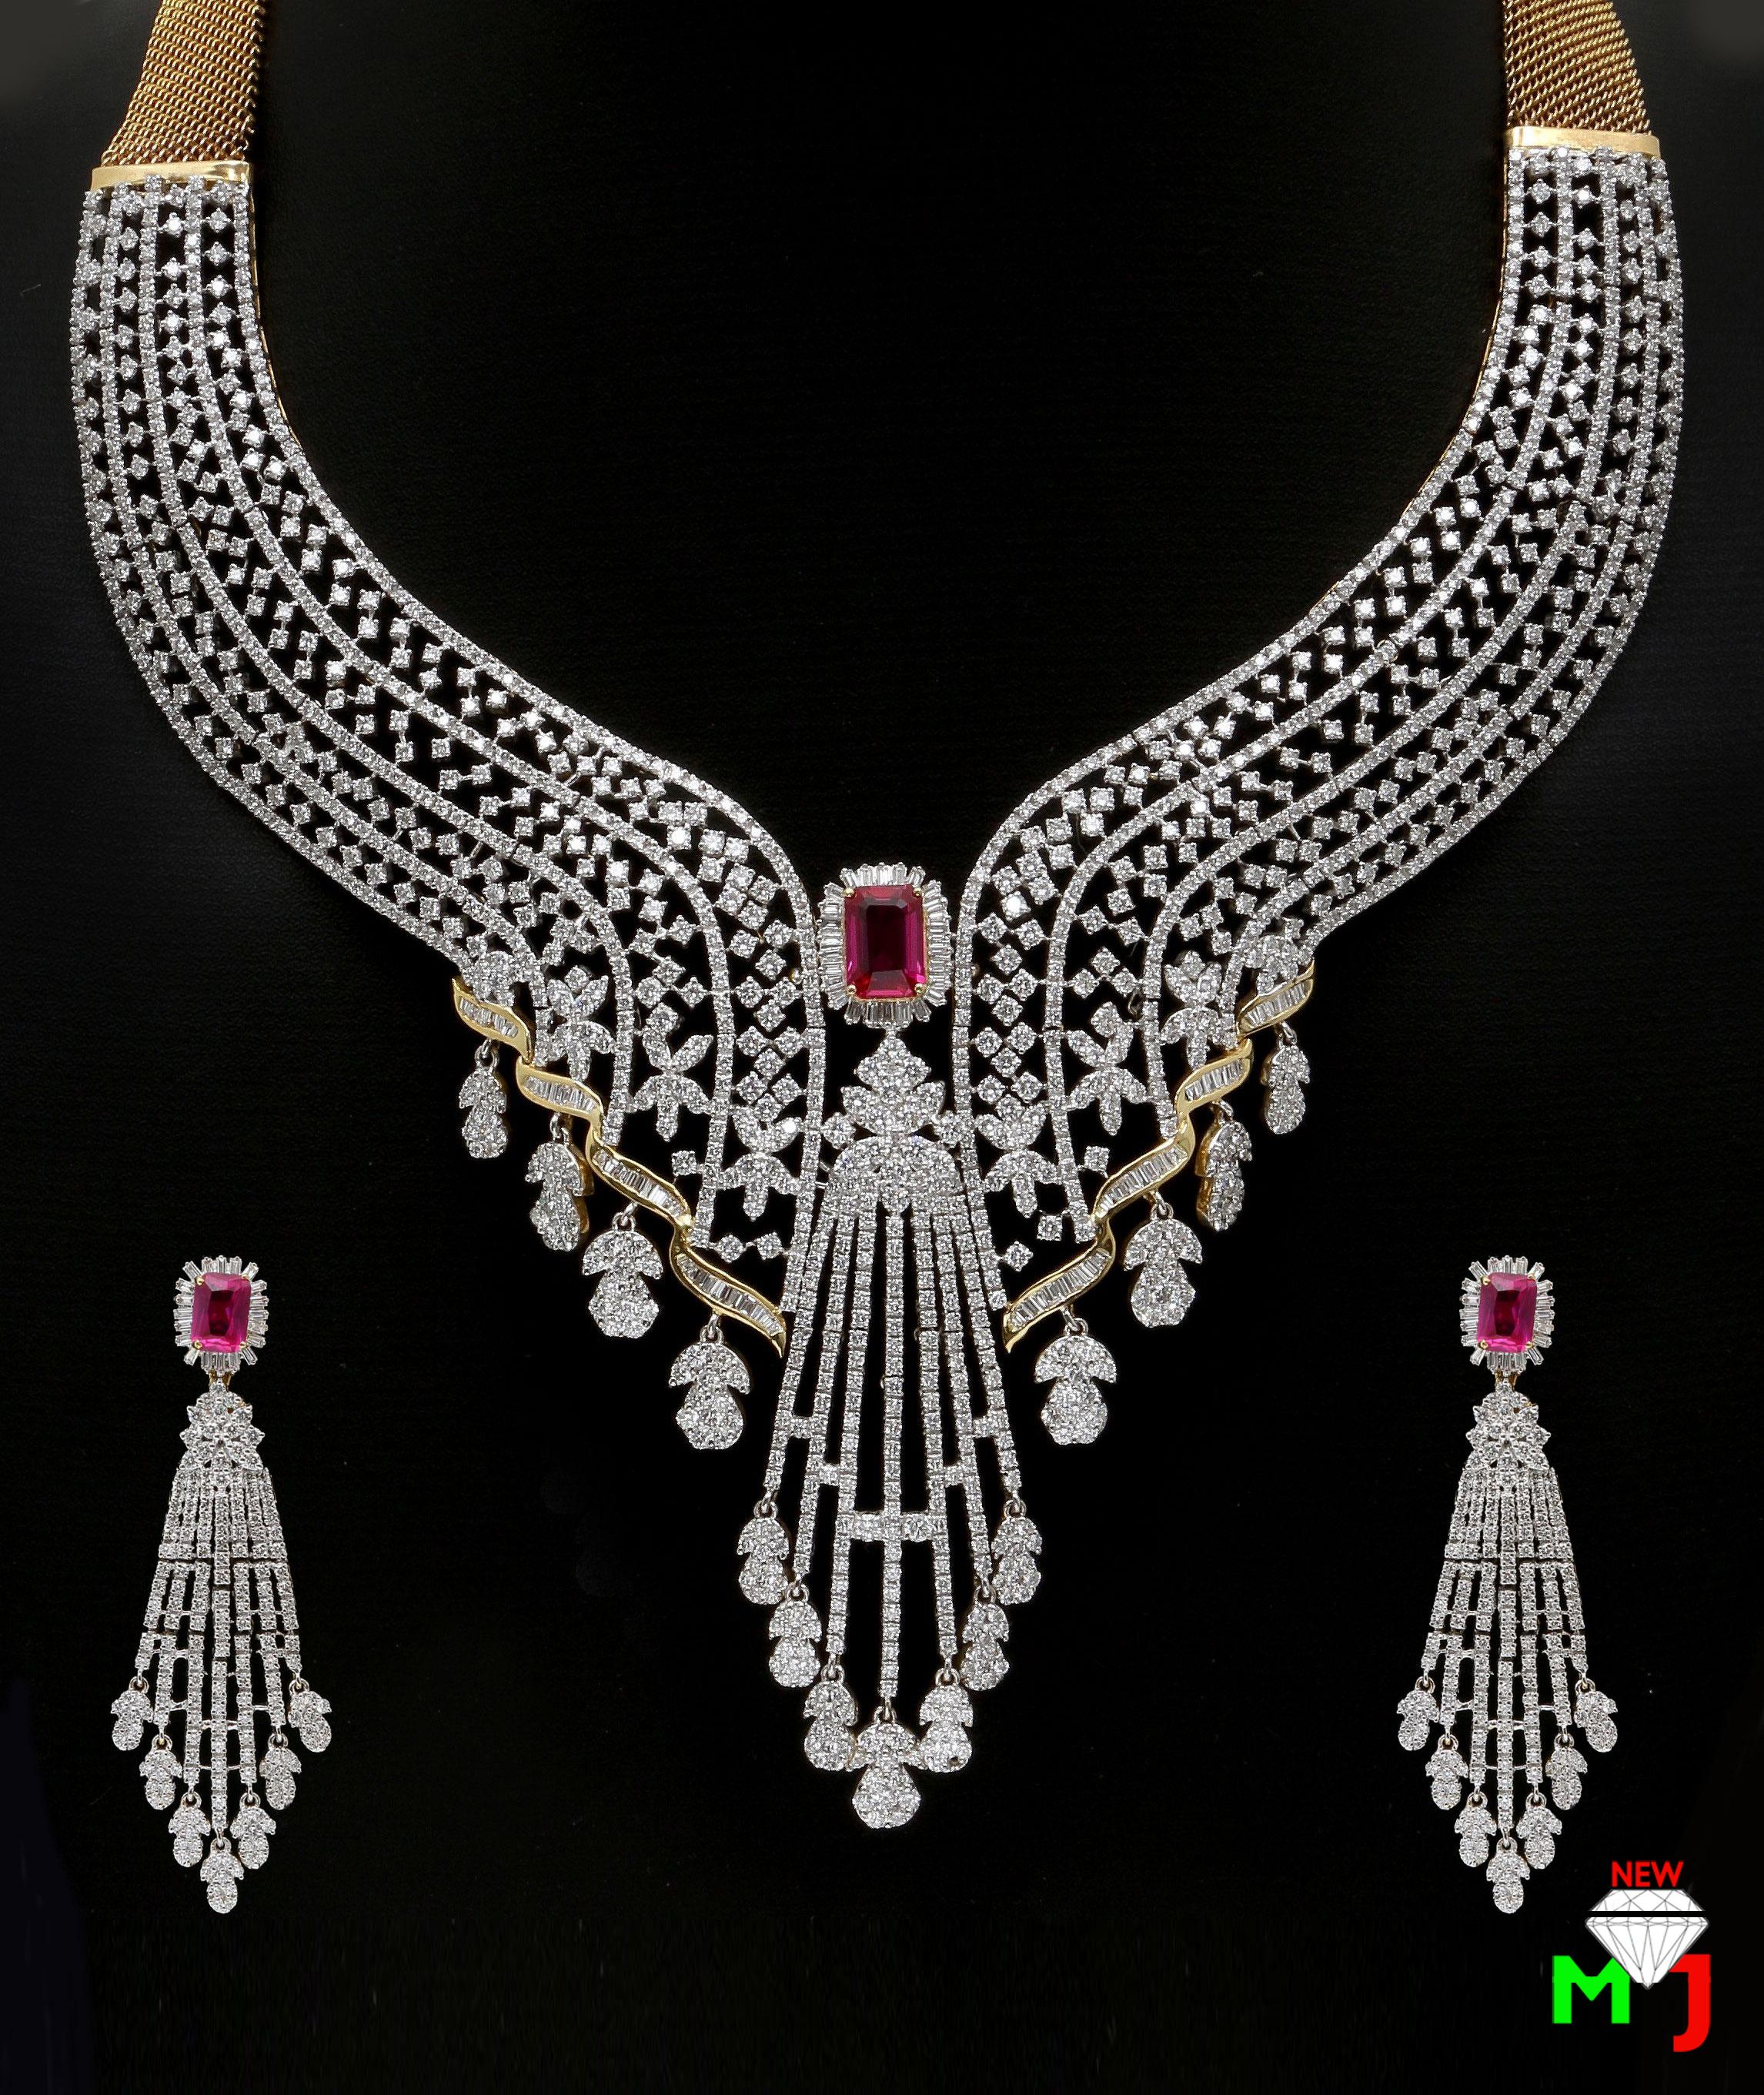 Beautiful diamond set by new maria jewellers. For more designs ...